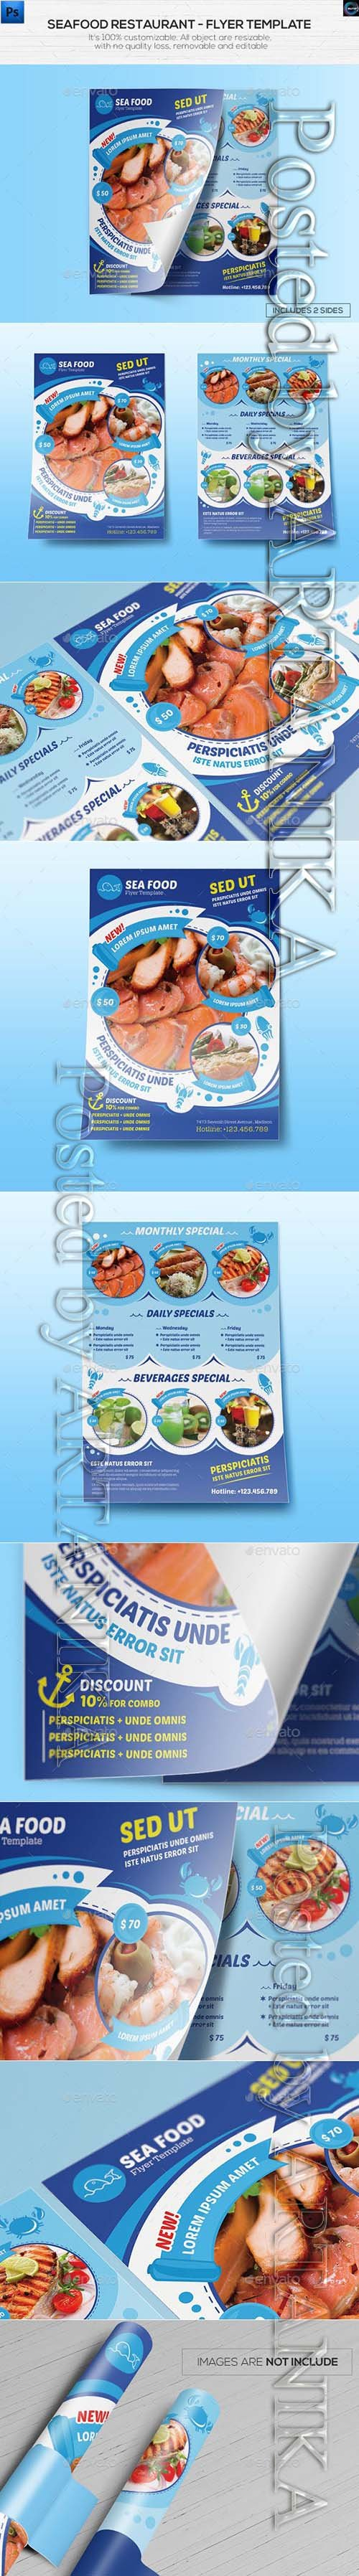 Graphicriver - Seafood Restaurant Flyer Template 12340002